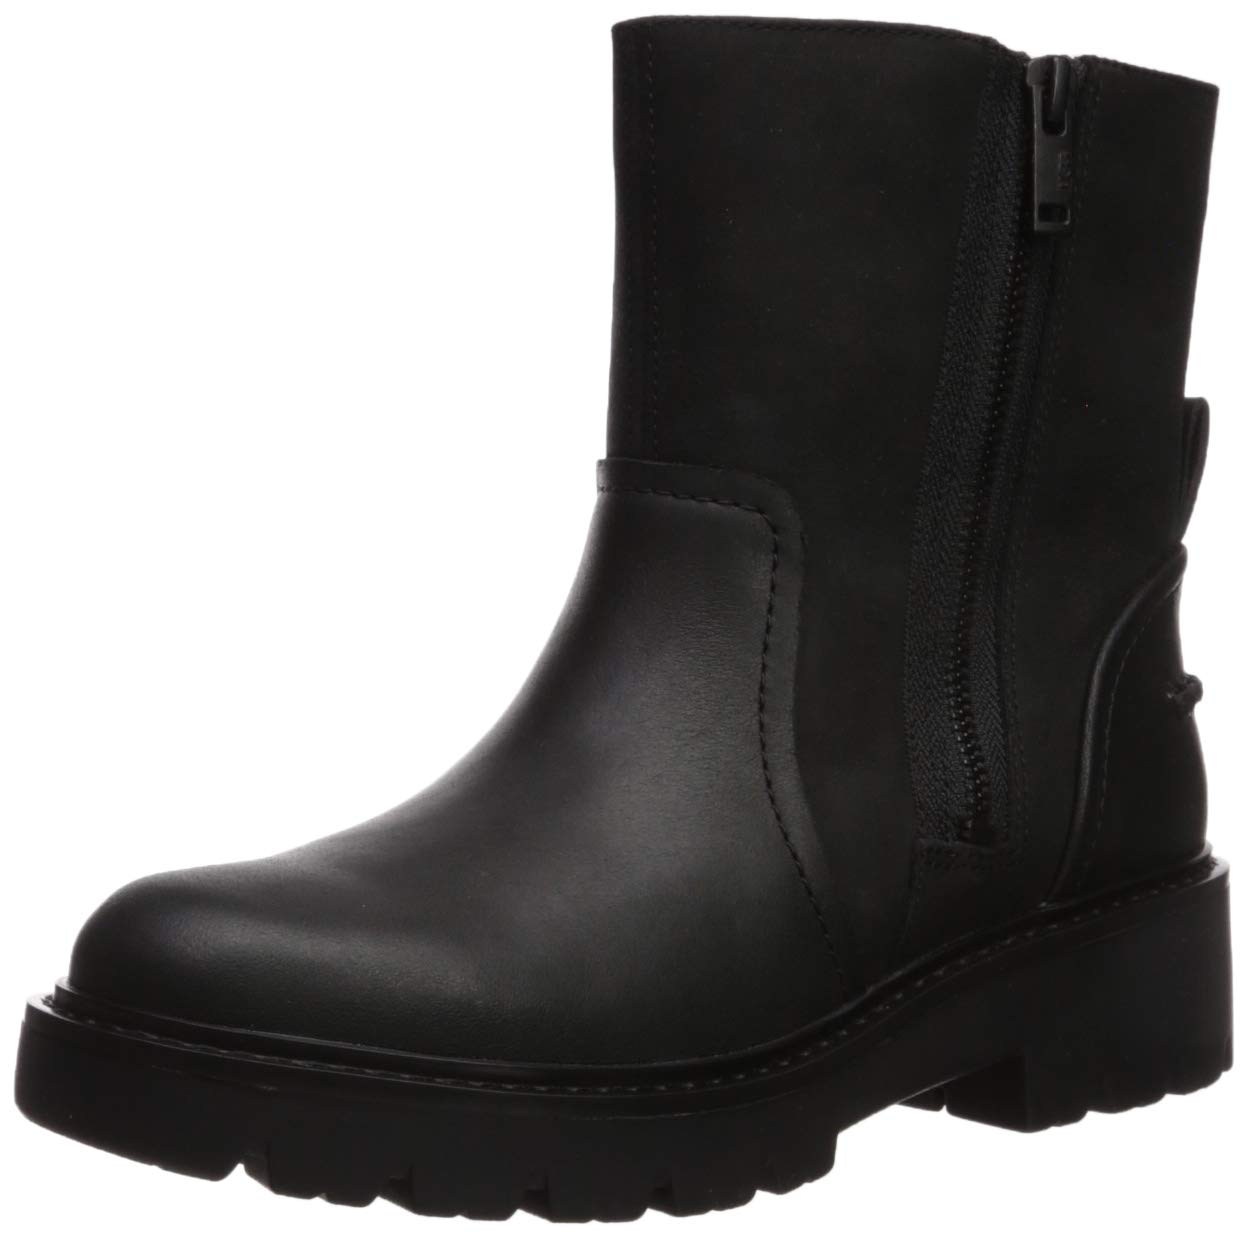 UGG Women's Polk Combat Boot, Black, 5.5 M US 1